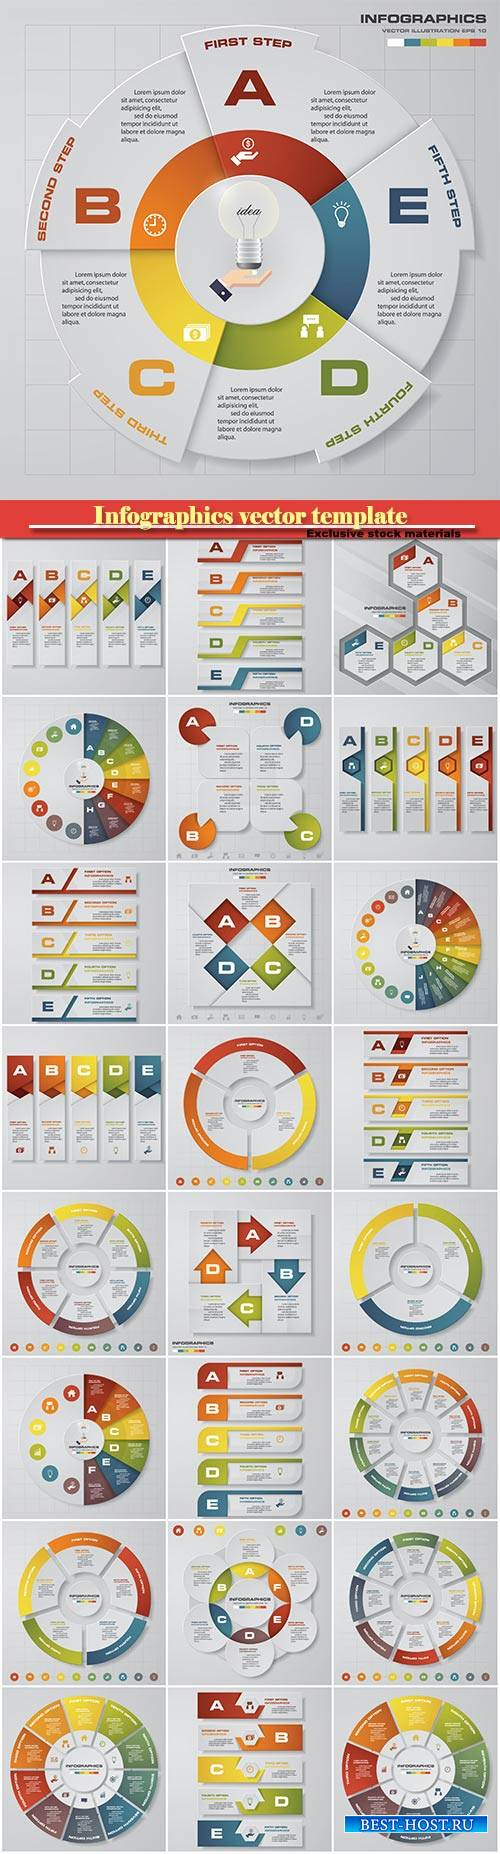 Infographics vector template for business presentations or information bann ...